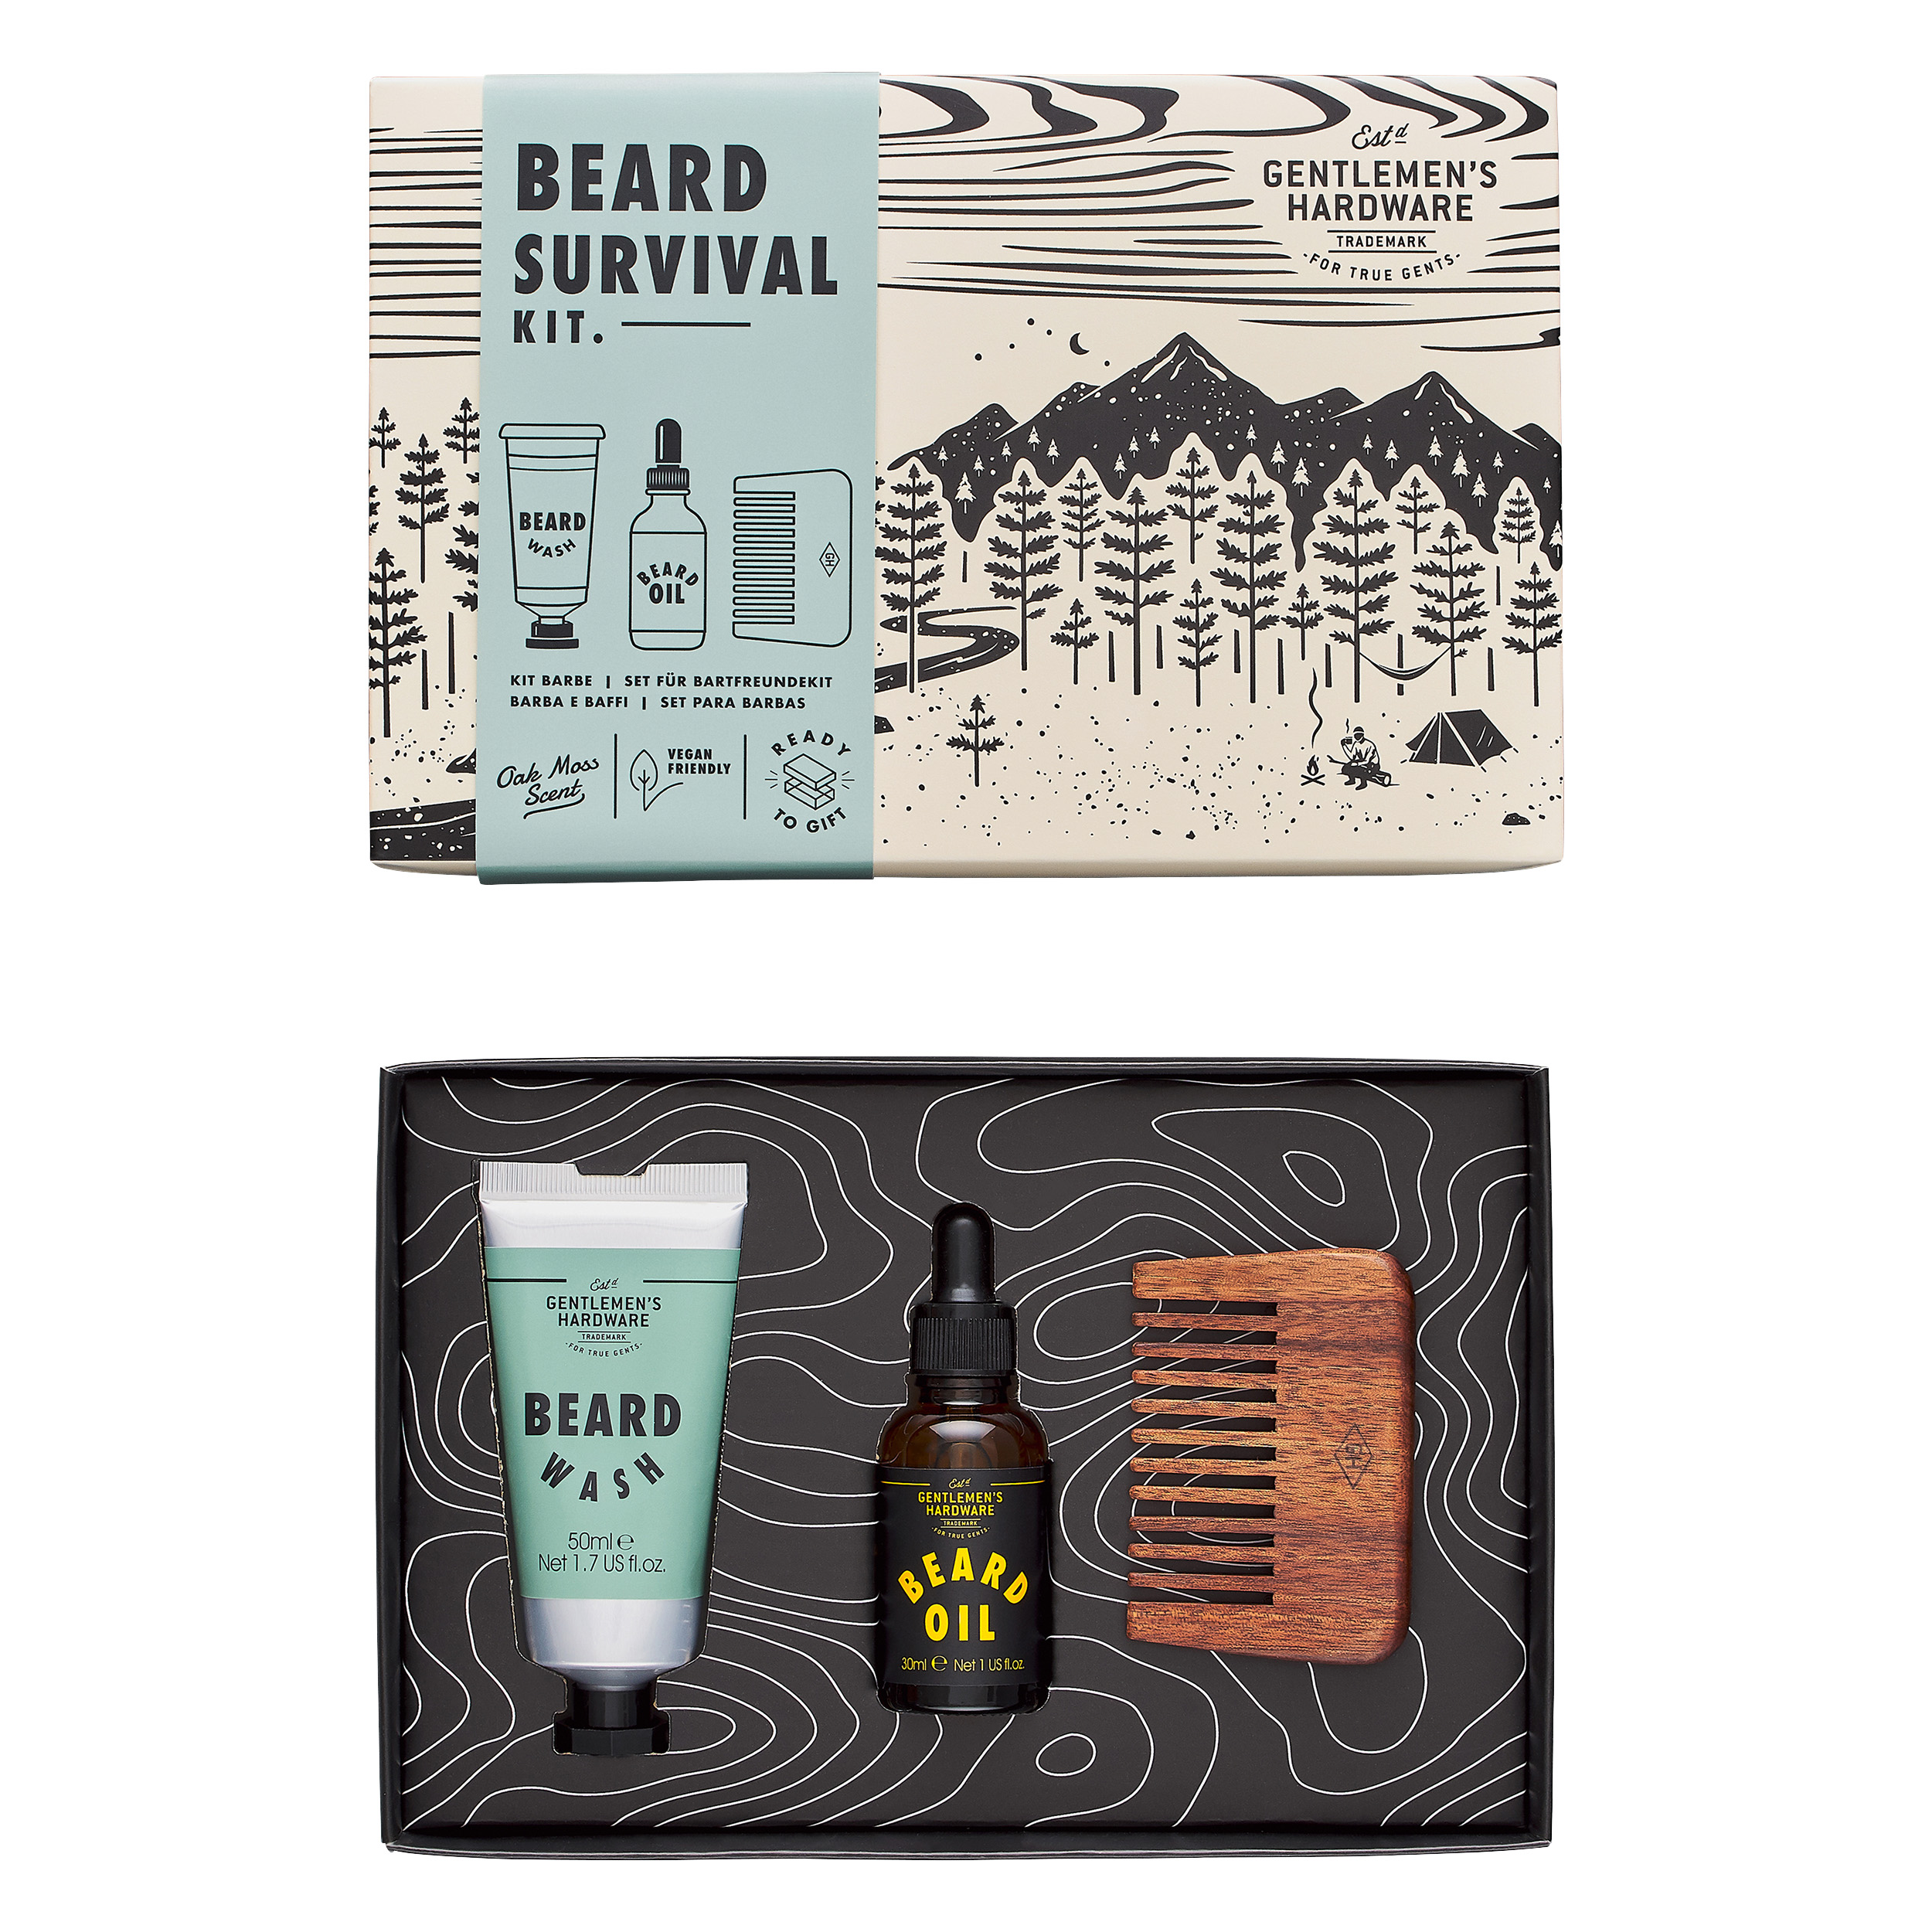 W&W BEARD SURVIVAL KIT